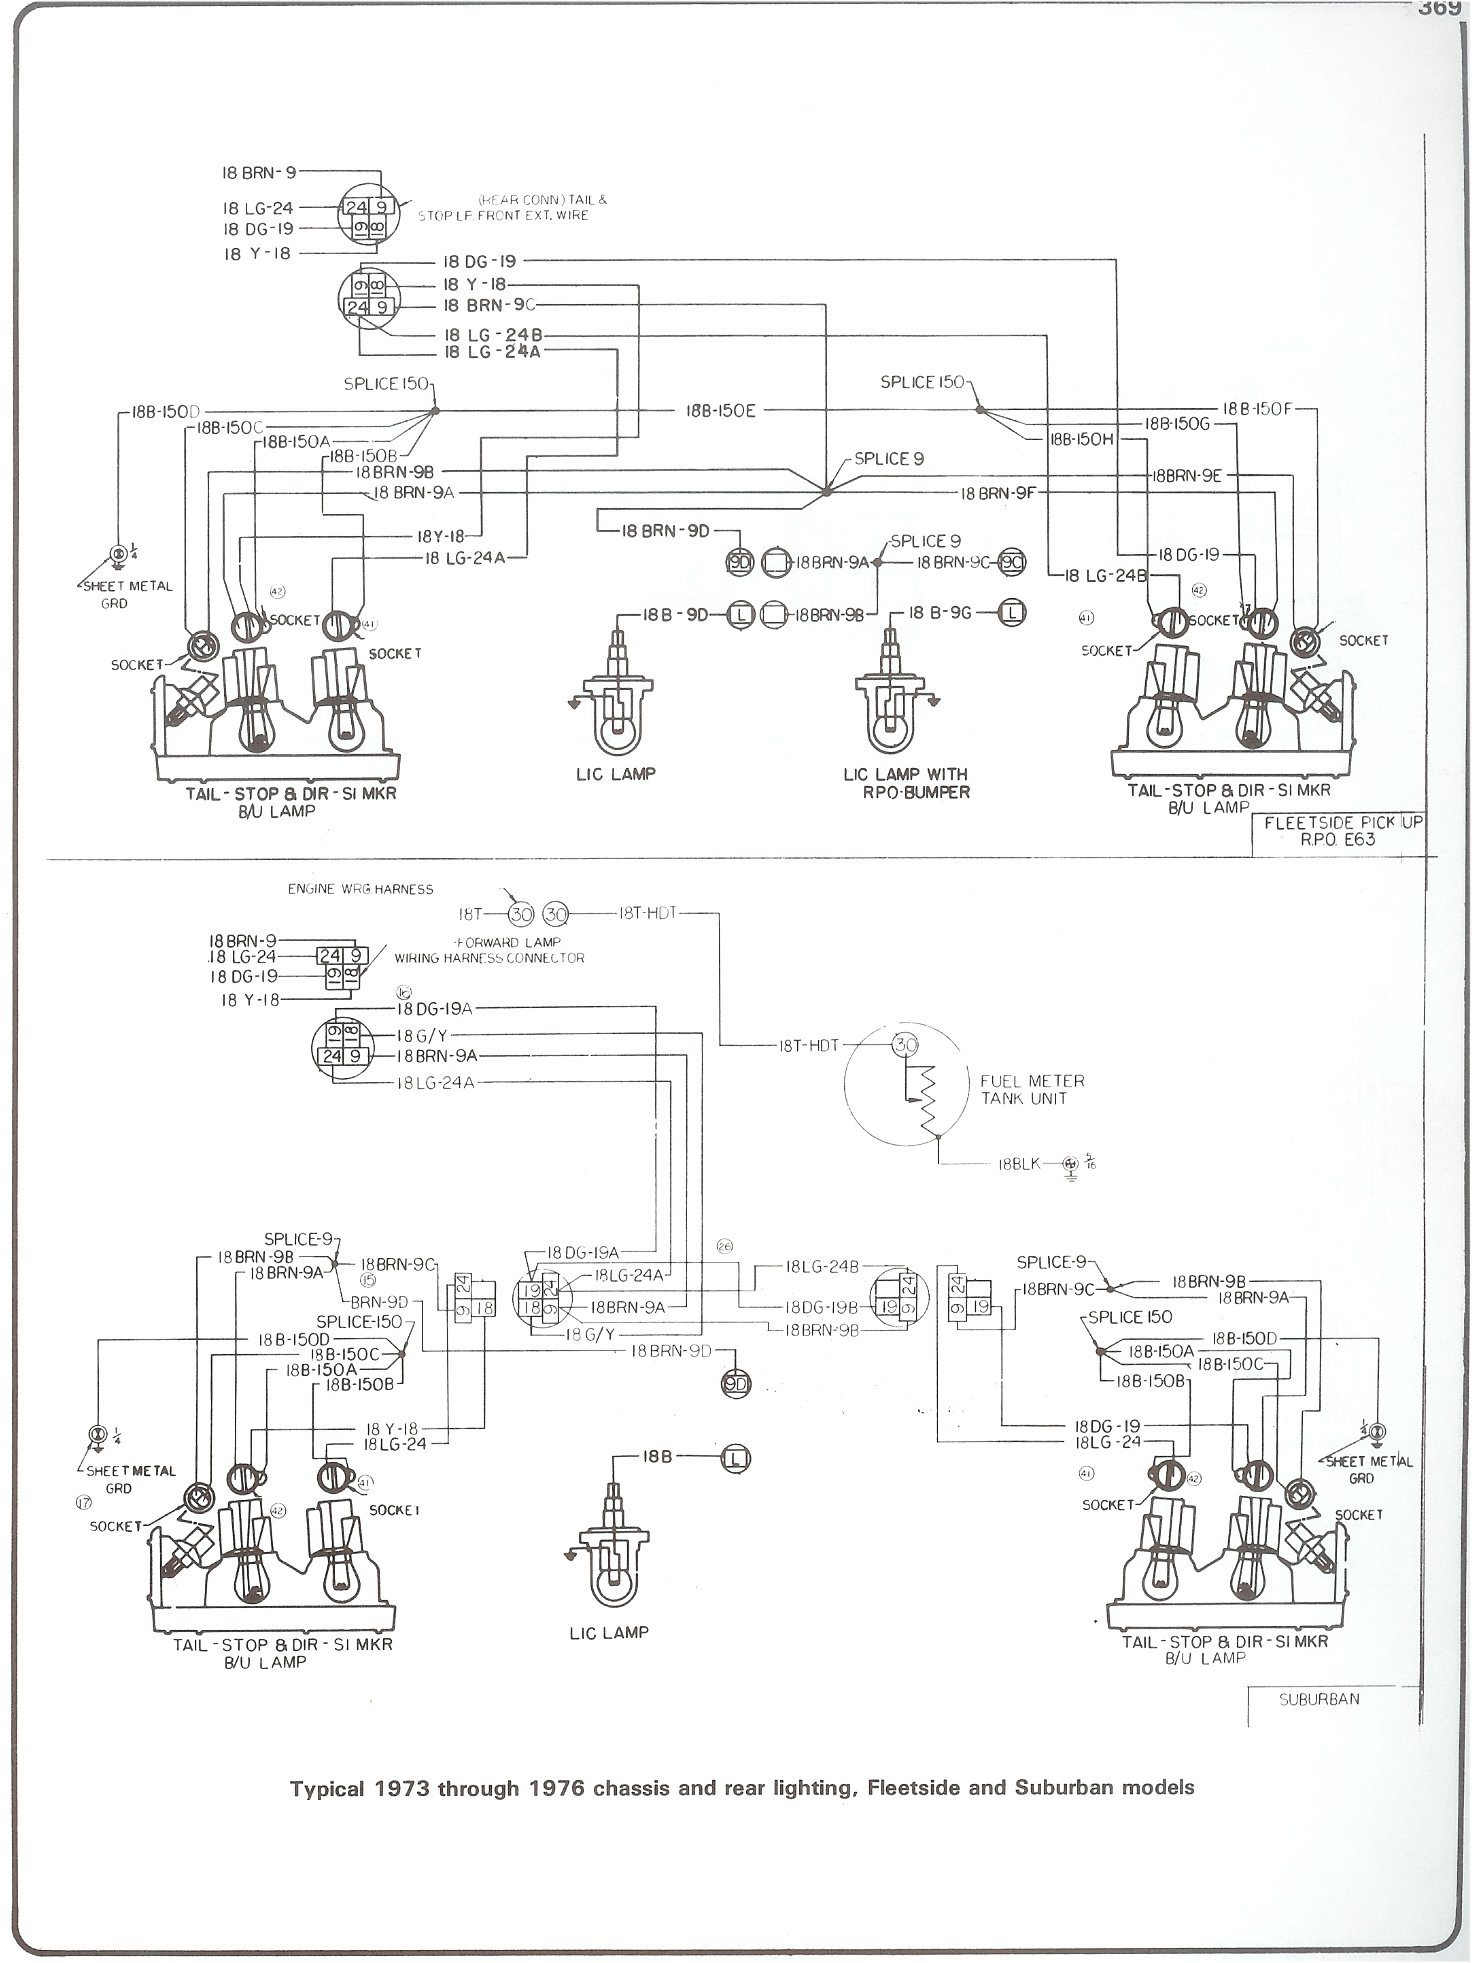 Plete 7387 Wiring Diagrams. 7376 Chassis Rear Lighting Fleetside And Suburban. Chevrolet. 1973 Chevrolet K10 Wiring At Scoala.co